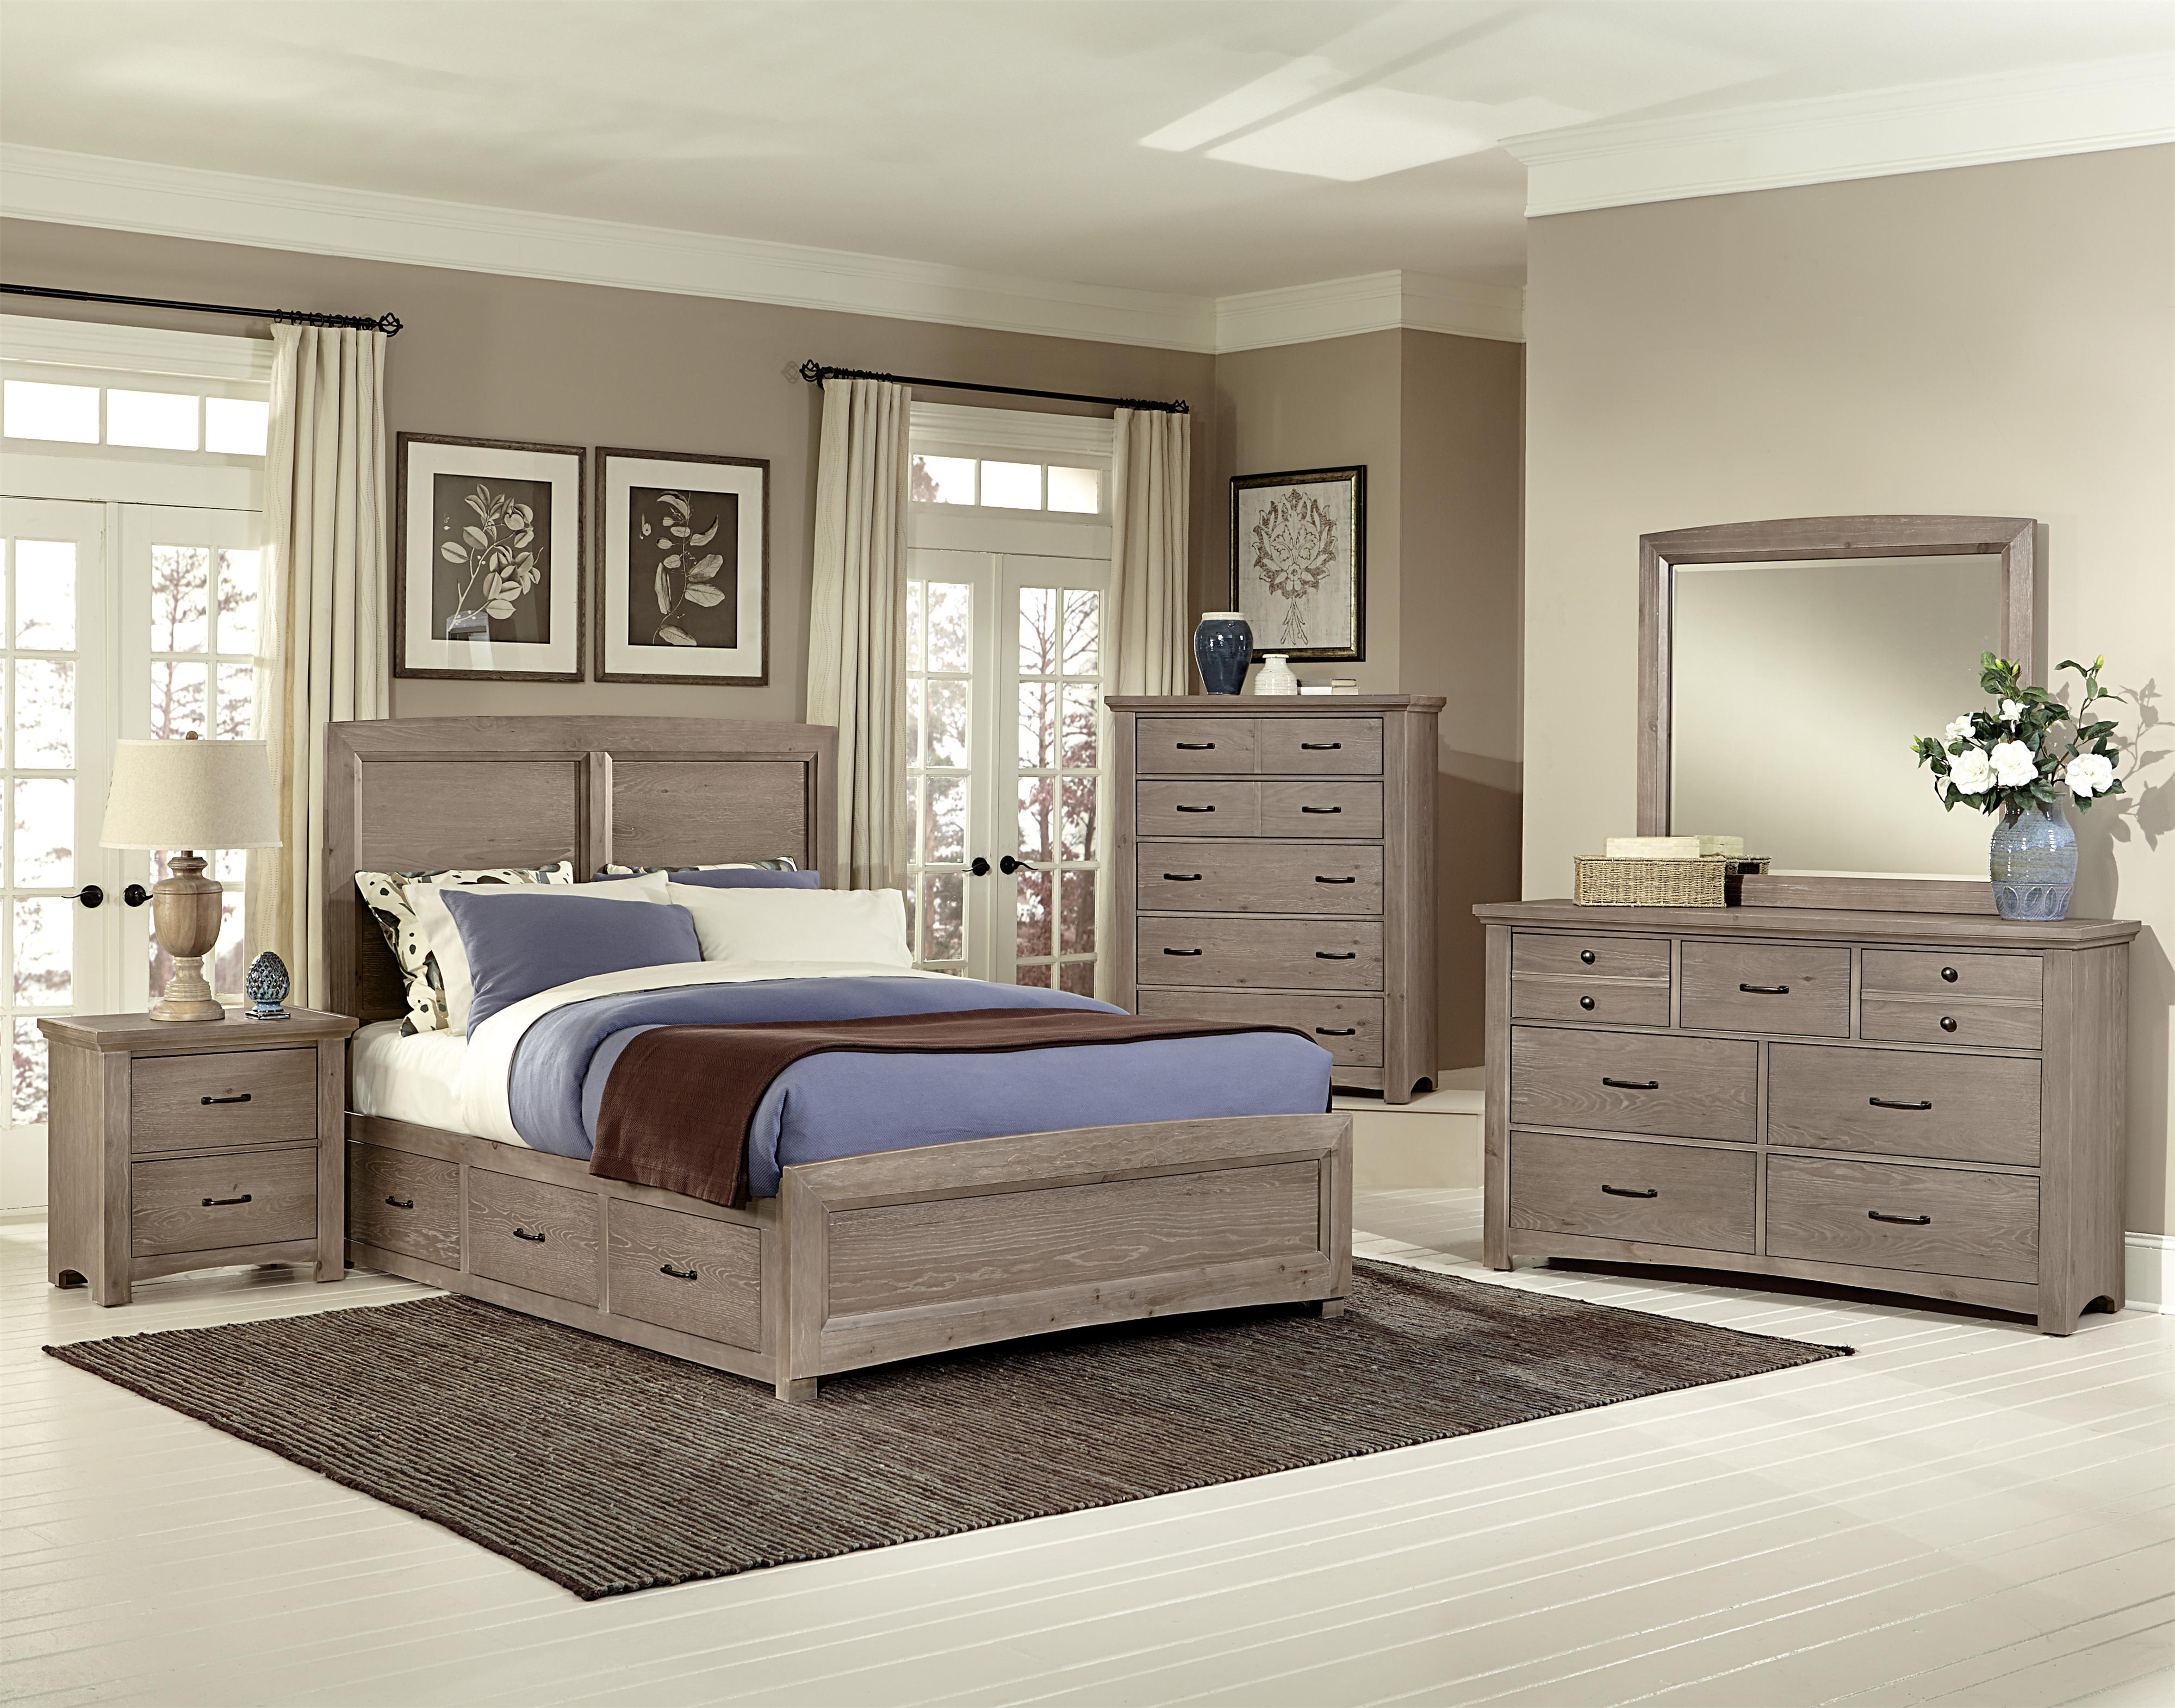 Vaughan Bassett Transitions Queen Bedroom Group - Item Number: BB61 Q Bedroom Group 3